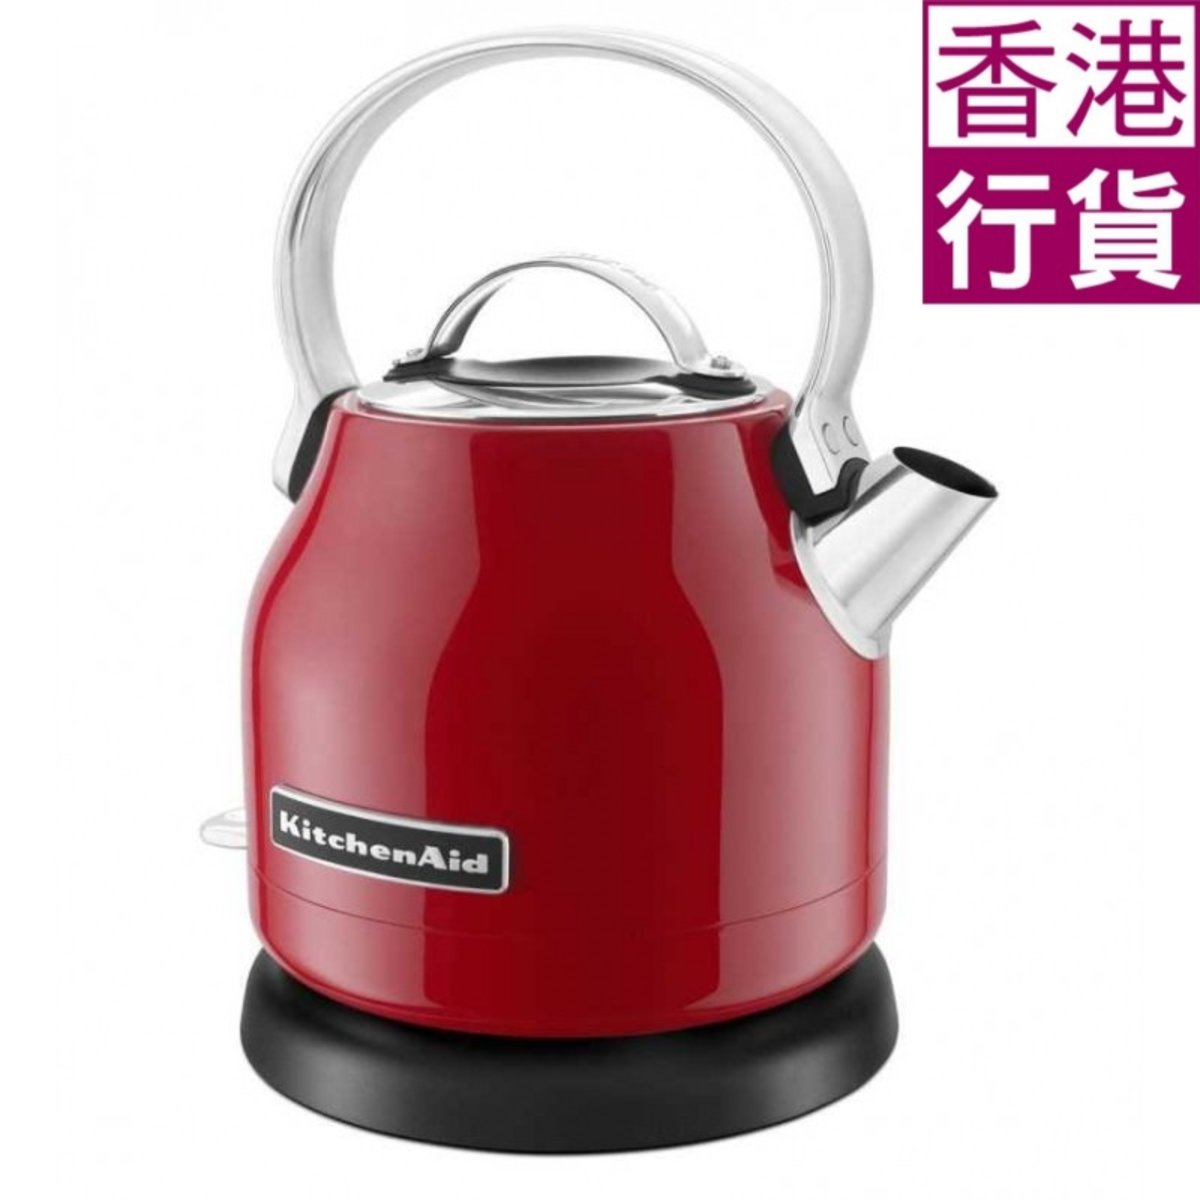 1.2L Small Space Electric Kettle (Red) (Official Warranty) 5KEK1222BER